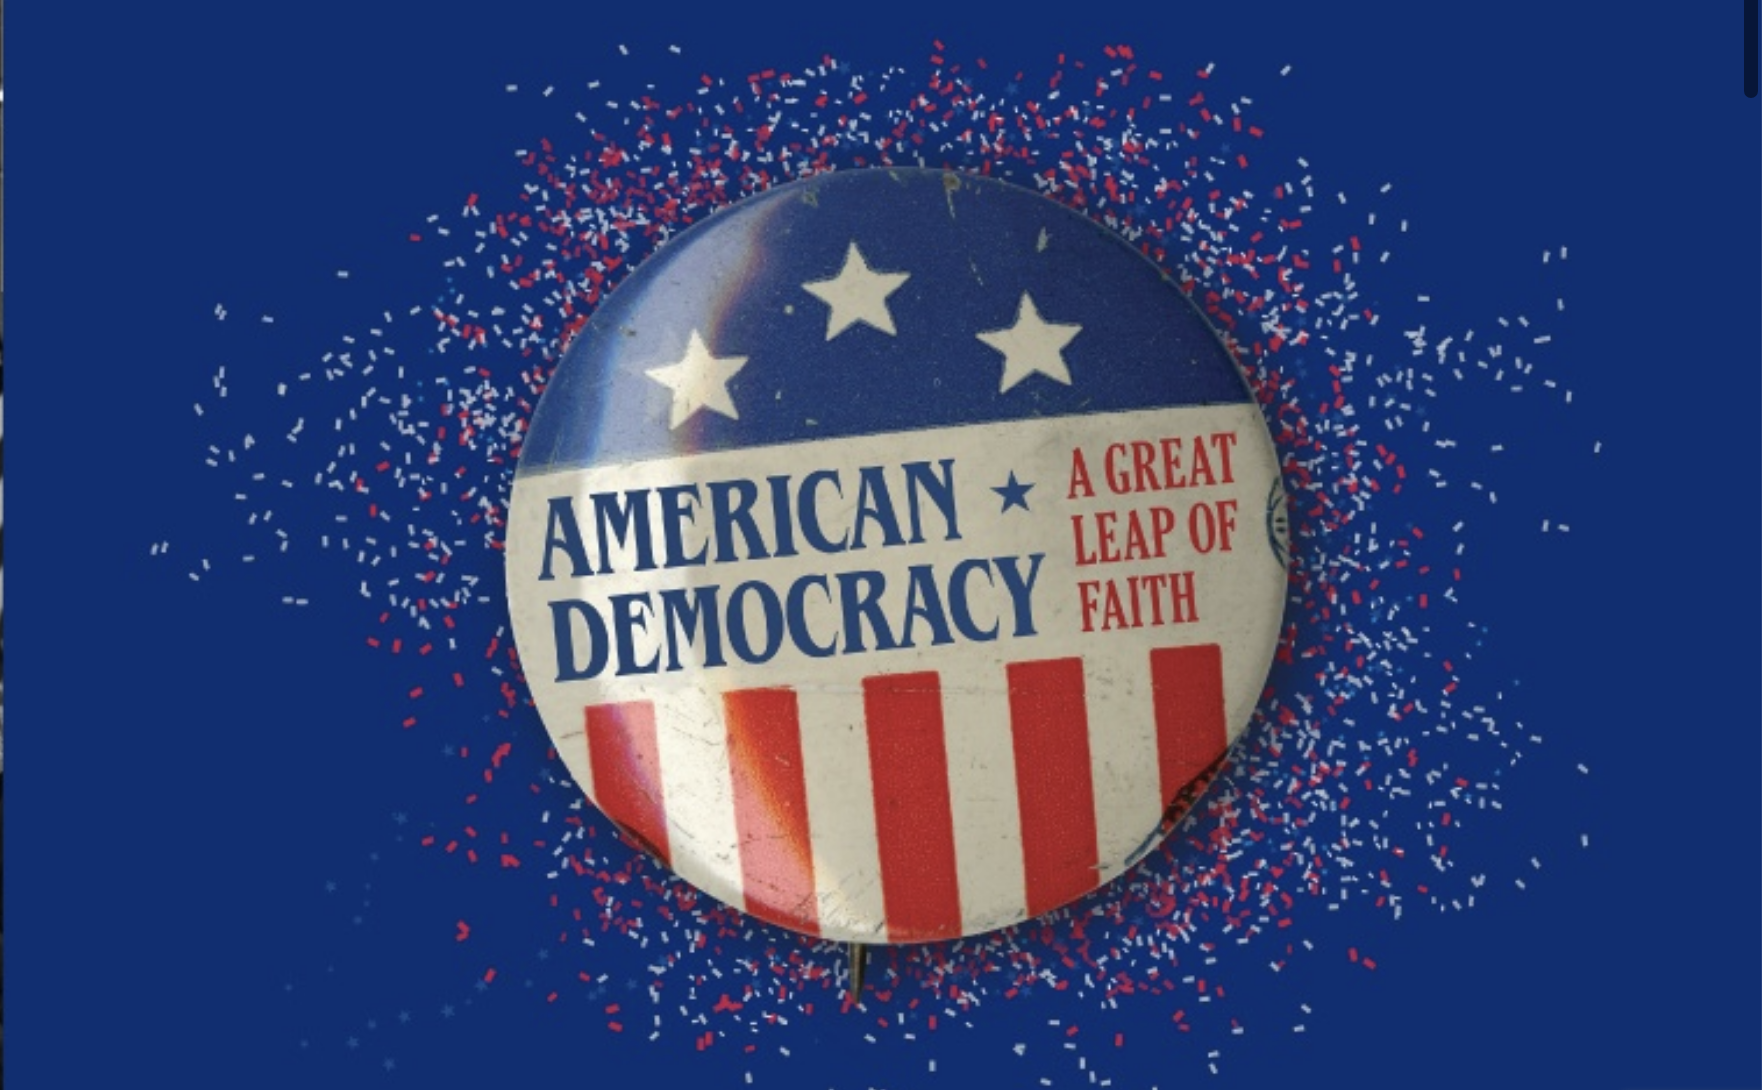 American Democracy: A Great Leap of Faith